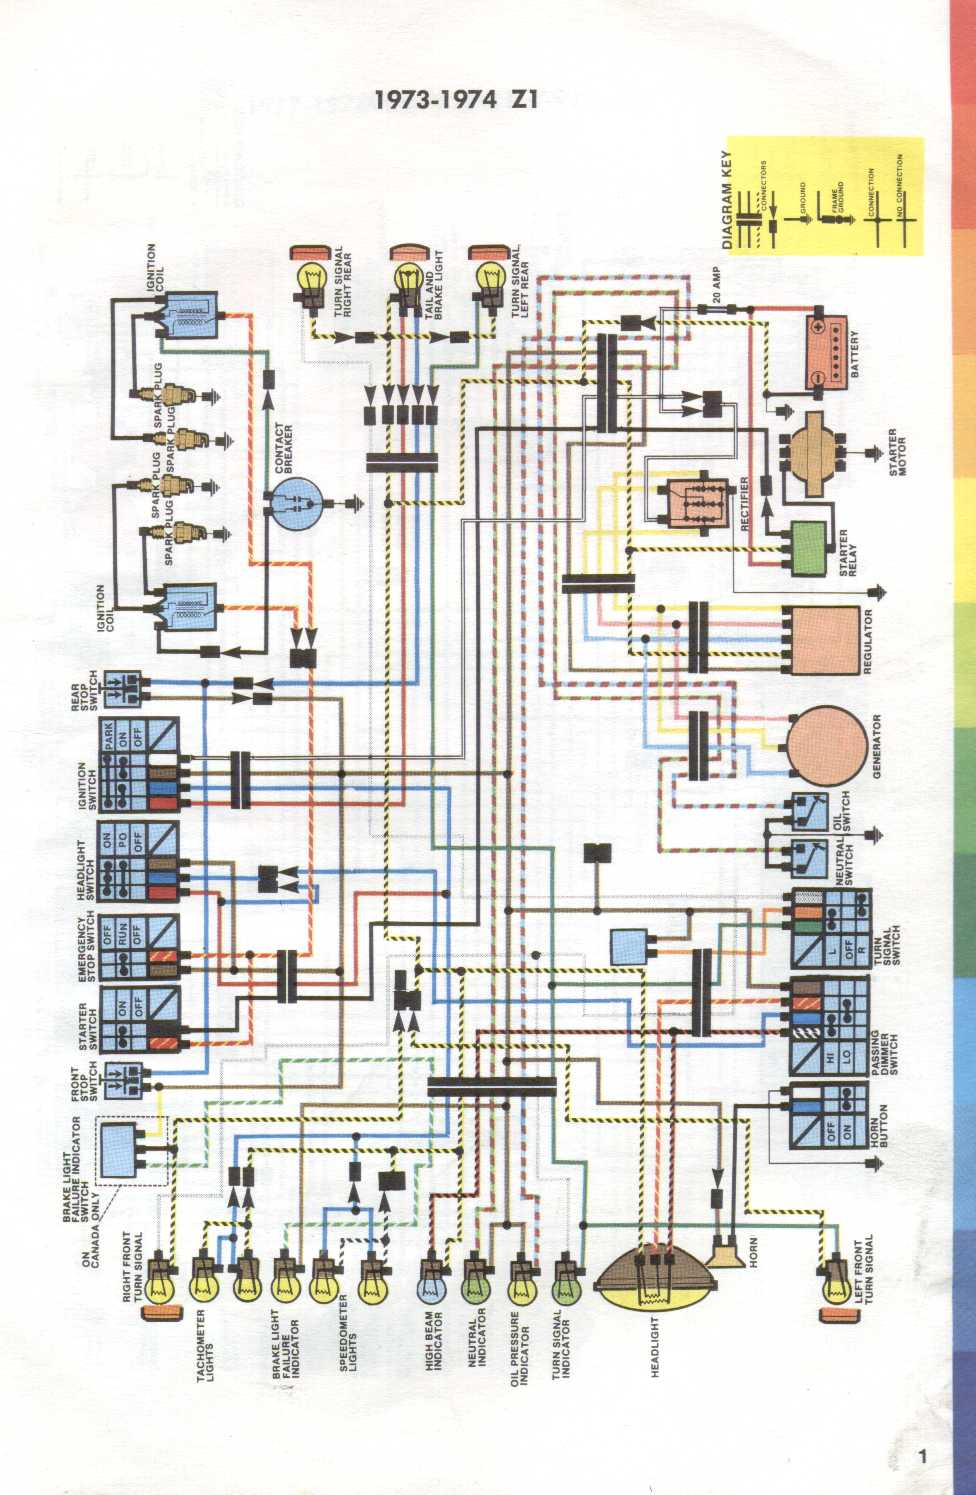 Z1 Wiring Diagram Detailed Schematic Diagrams Kawasaki Zx9r Free Picture 1976 Kz900 Schematics Rd400 Index Of Kz Electrical